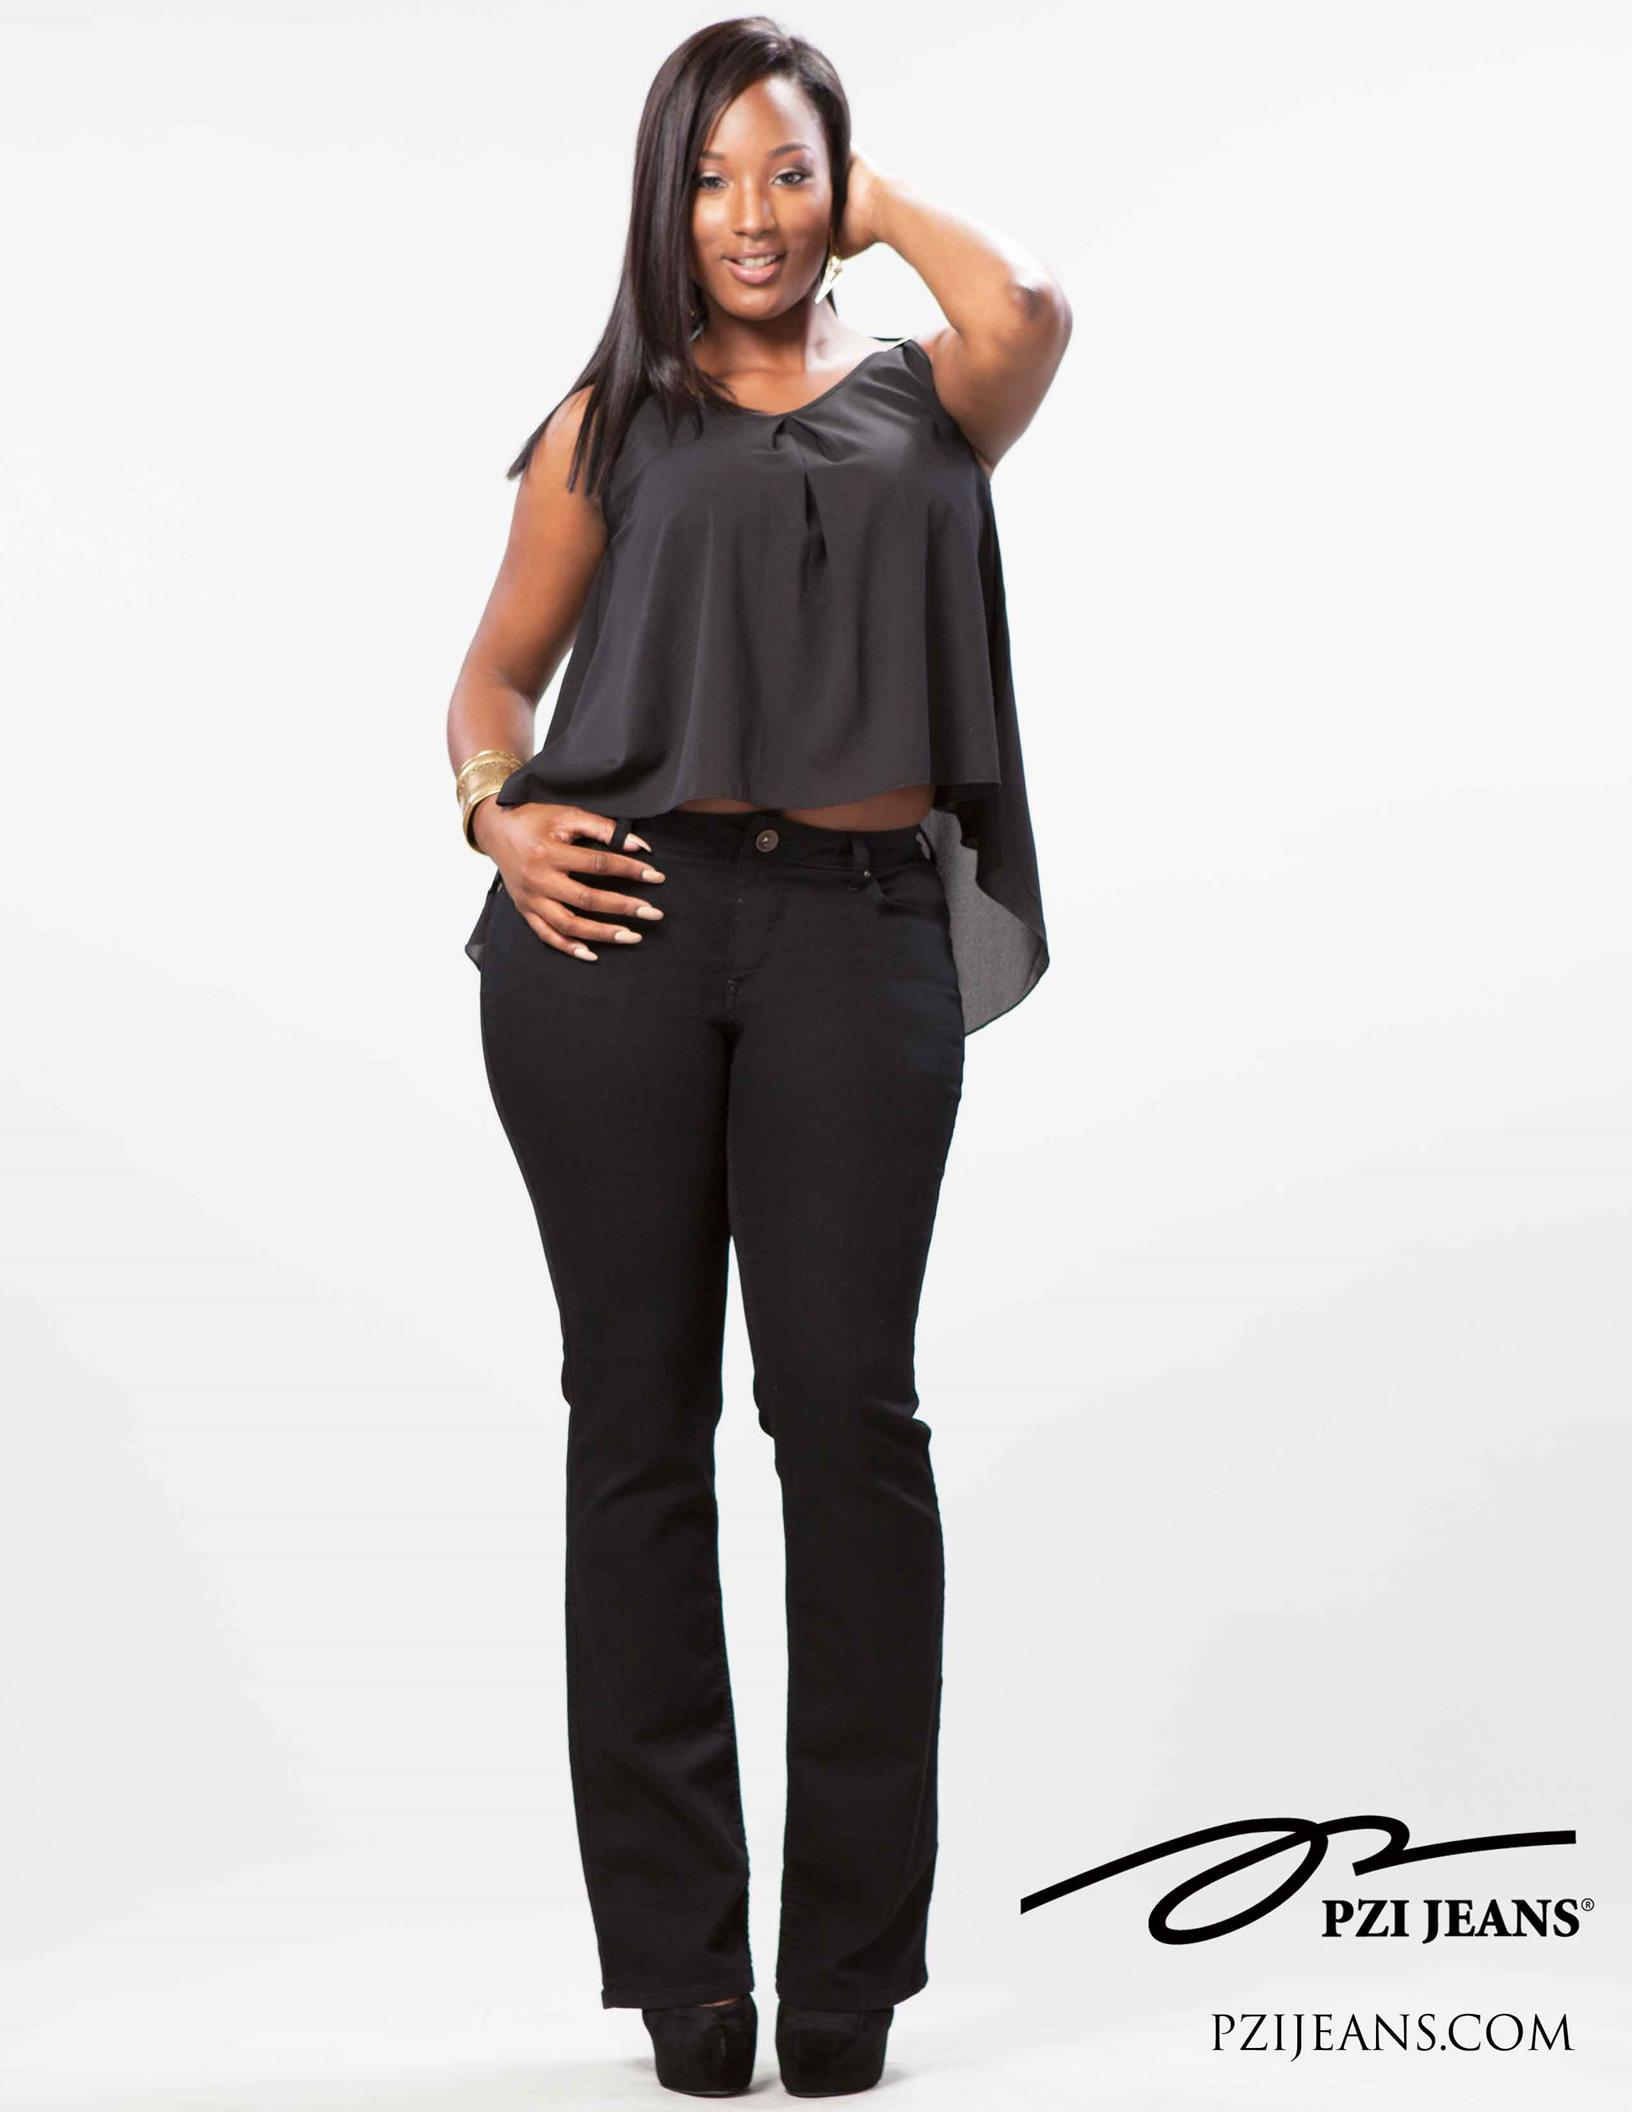 de29006cd86 PZI JEANS INTRODUCES NEW DENIM STYLES FOR FALL/WINTER 2014 - Upscale ...